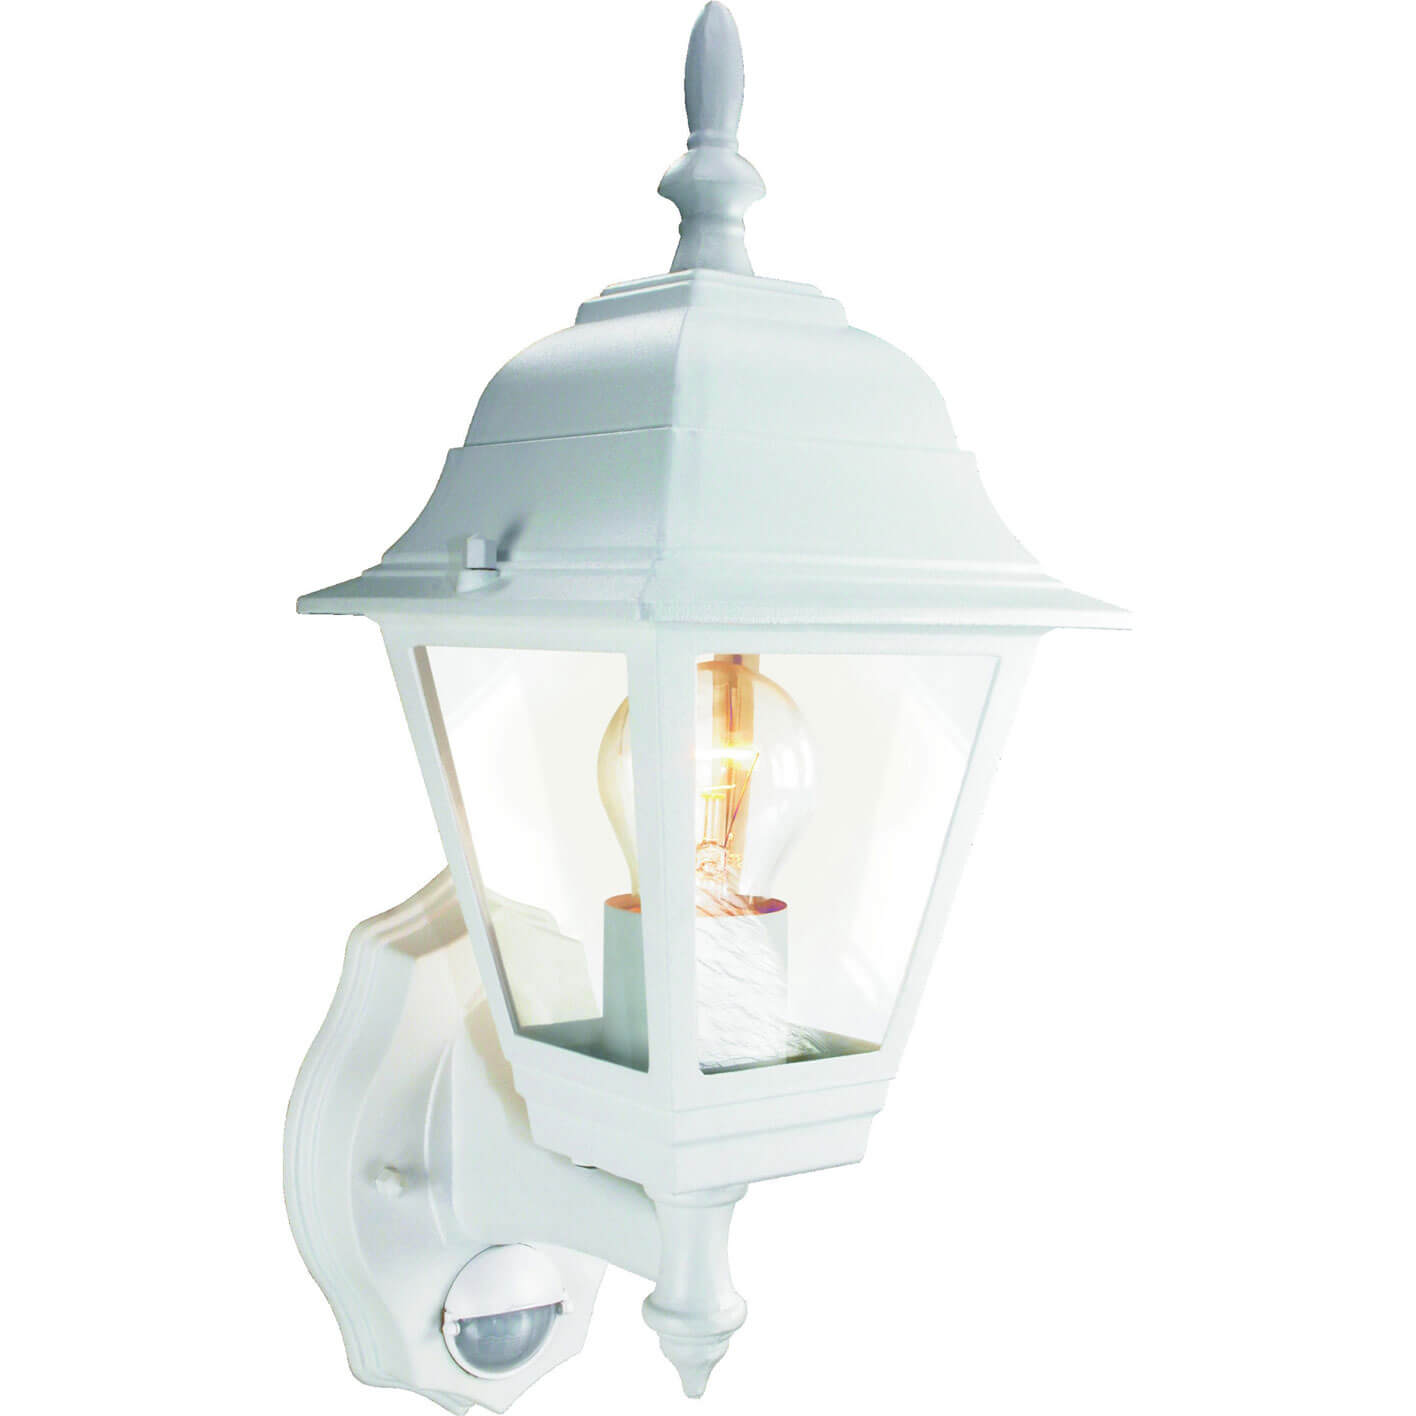 Byron ES94W 4-Panel Coach Lantern with Motion Detector White 240v